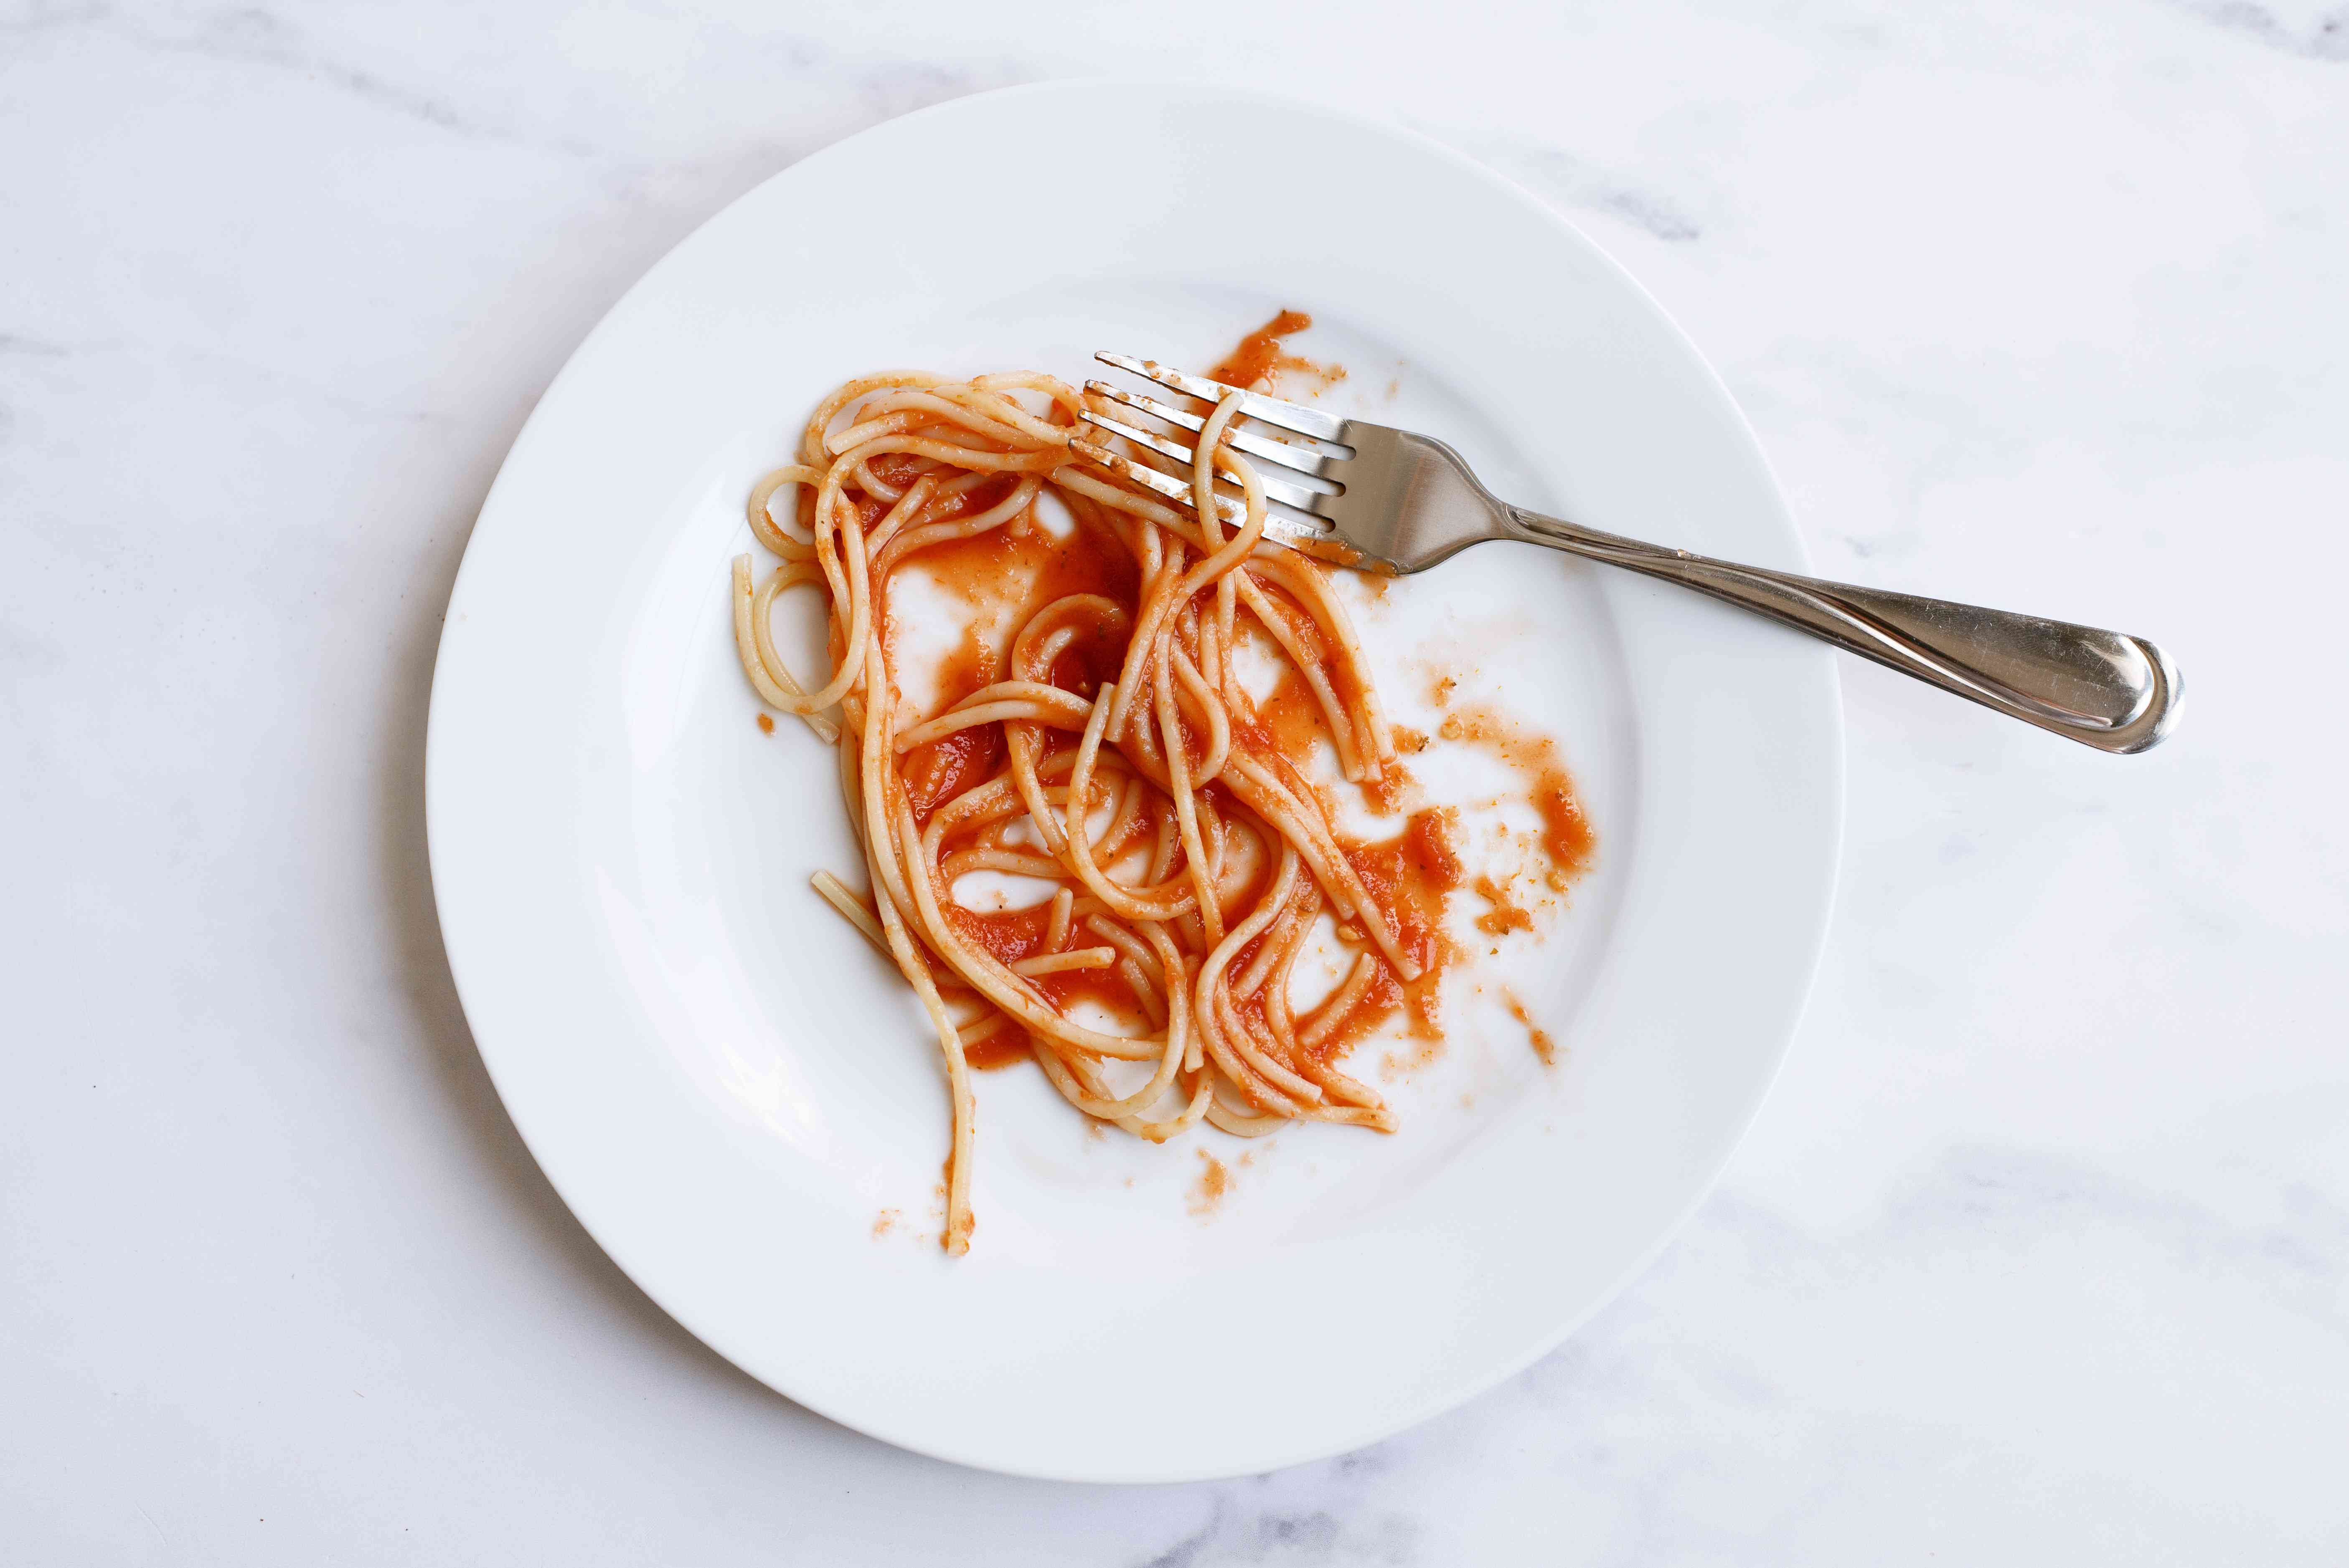 White plate with leftover pasta noodles and sauce with fork on top